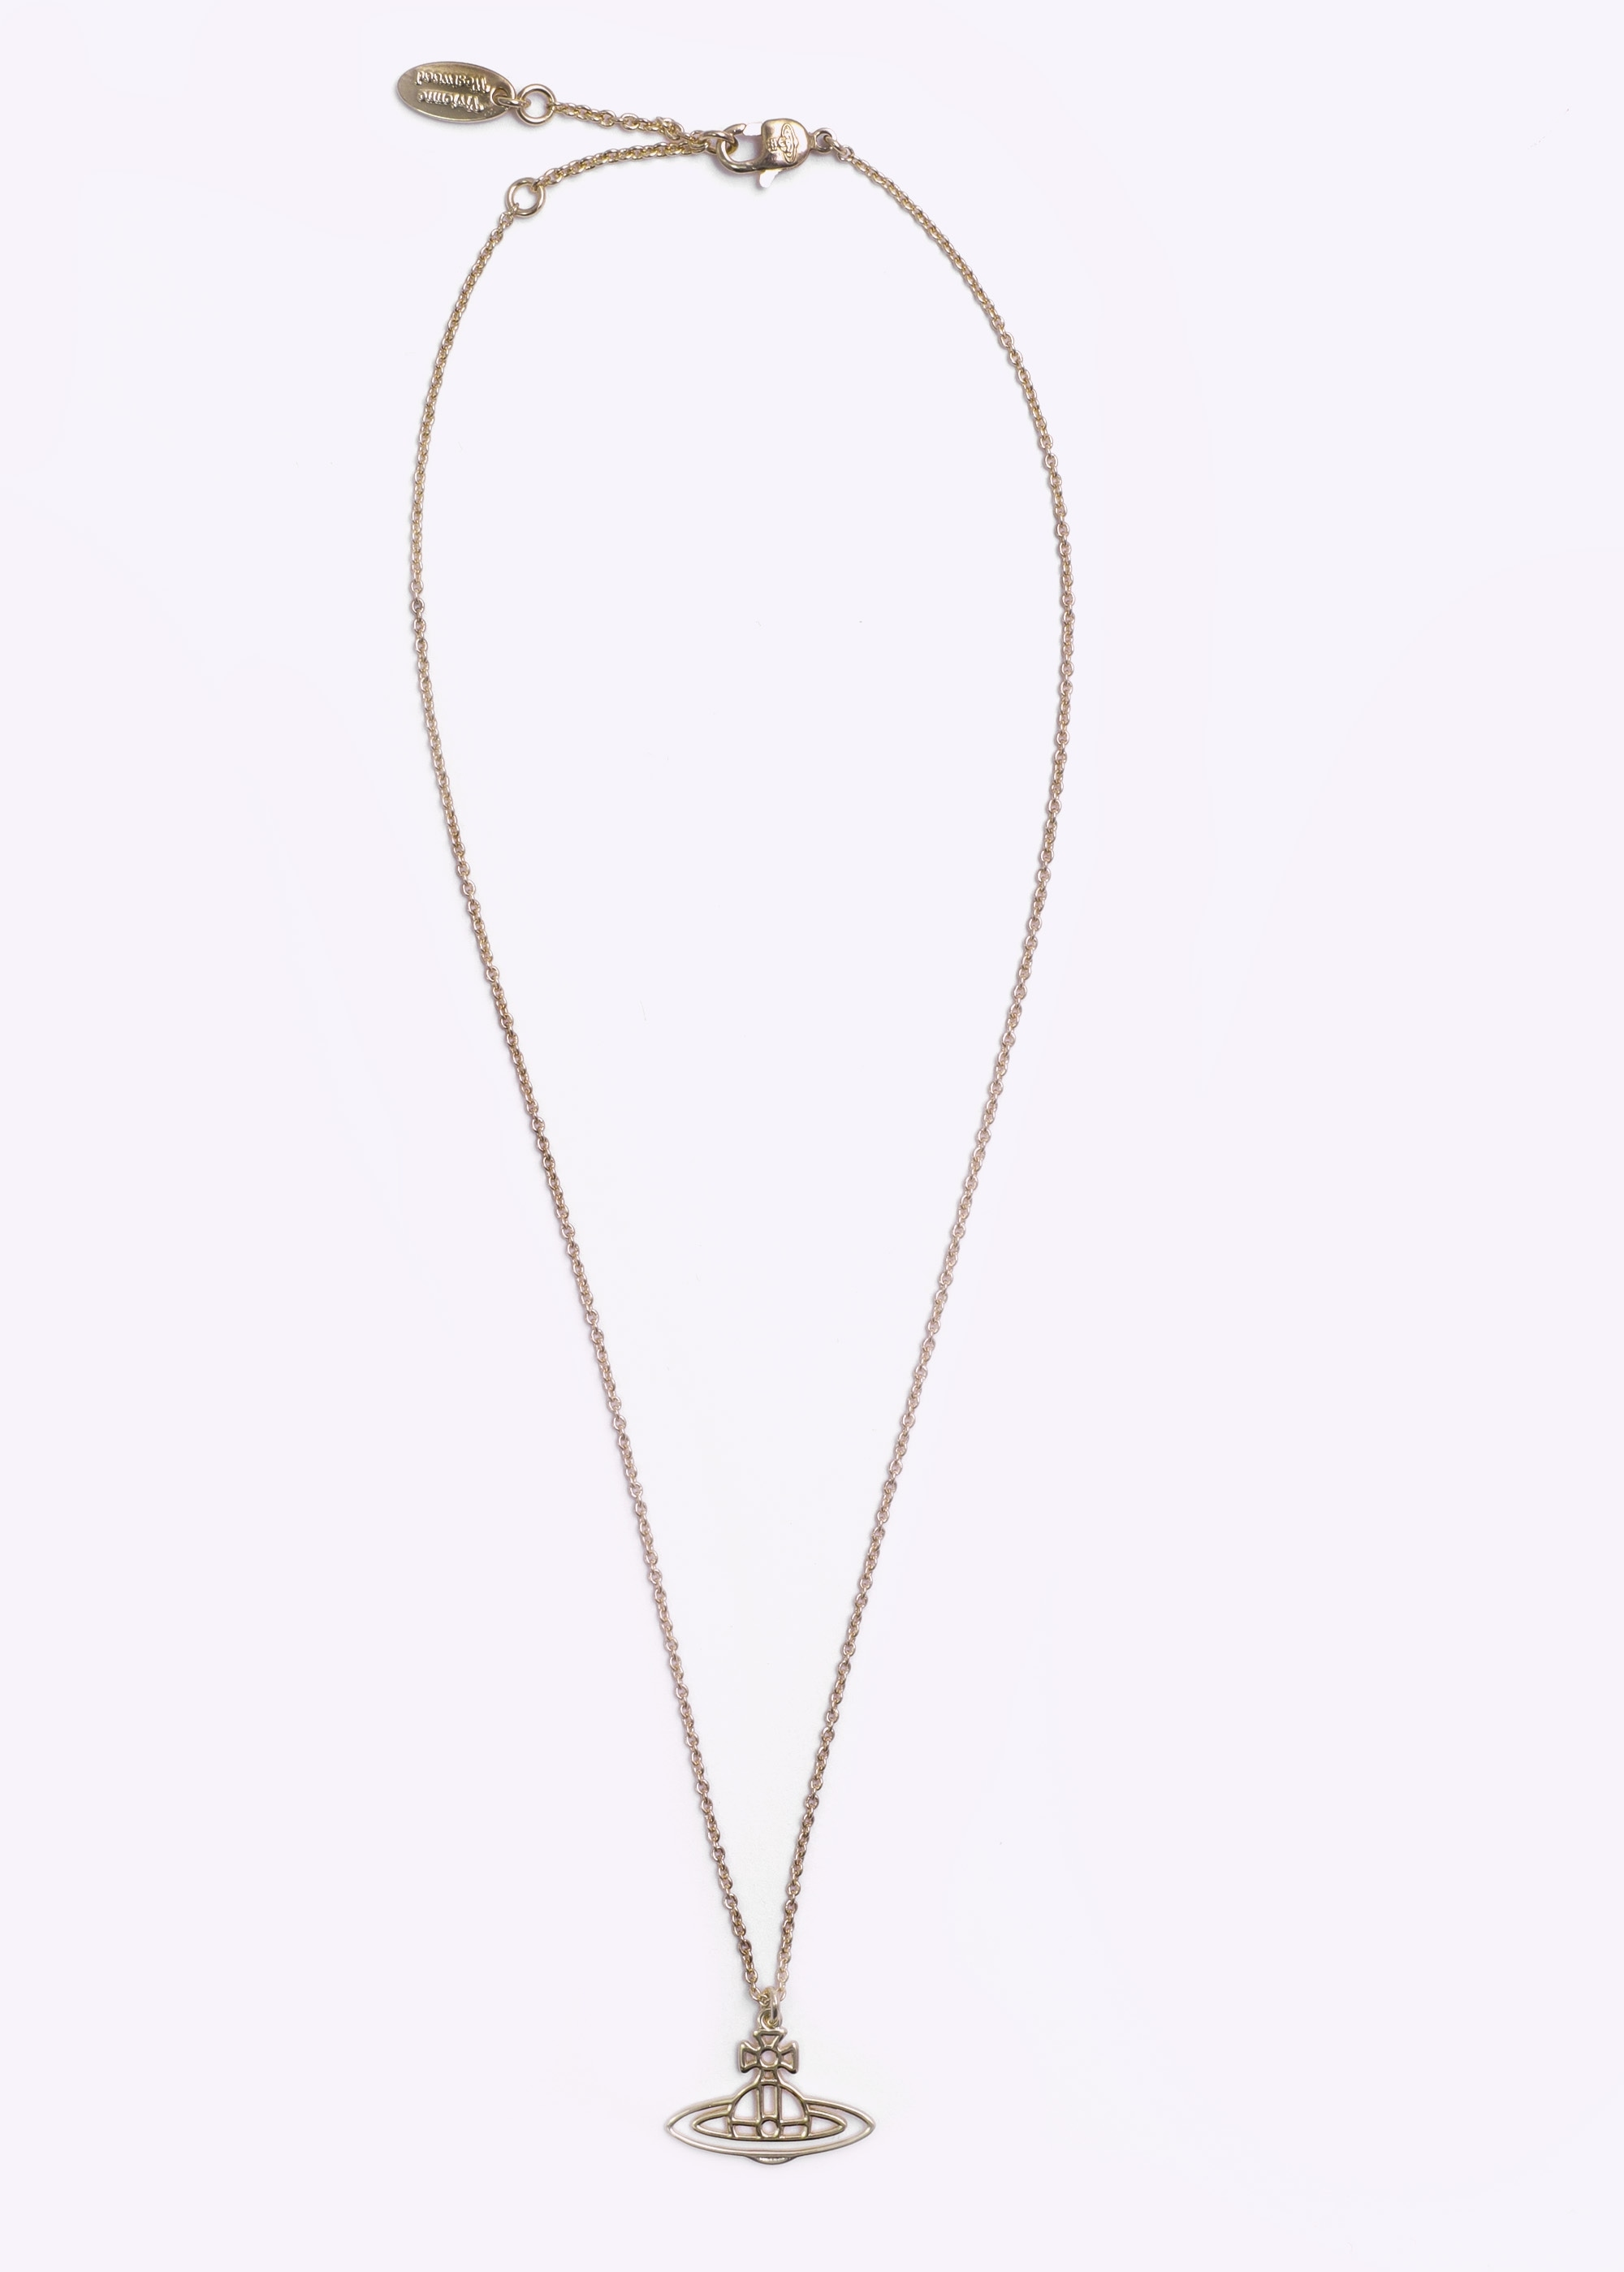 76d94eee26a9ee Vivienne Westwood Accessories Thin Lines Flat Orb Pendant - Gold ...